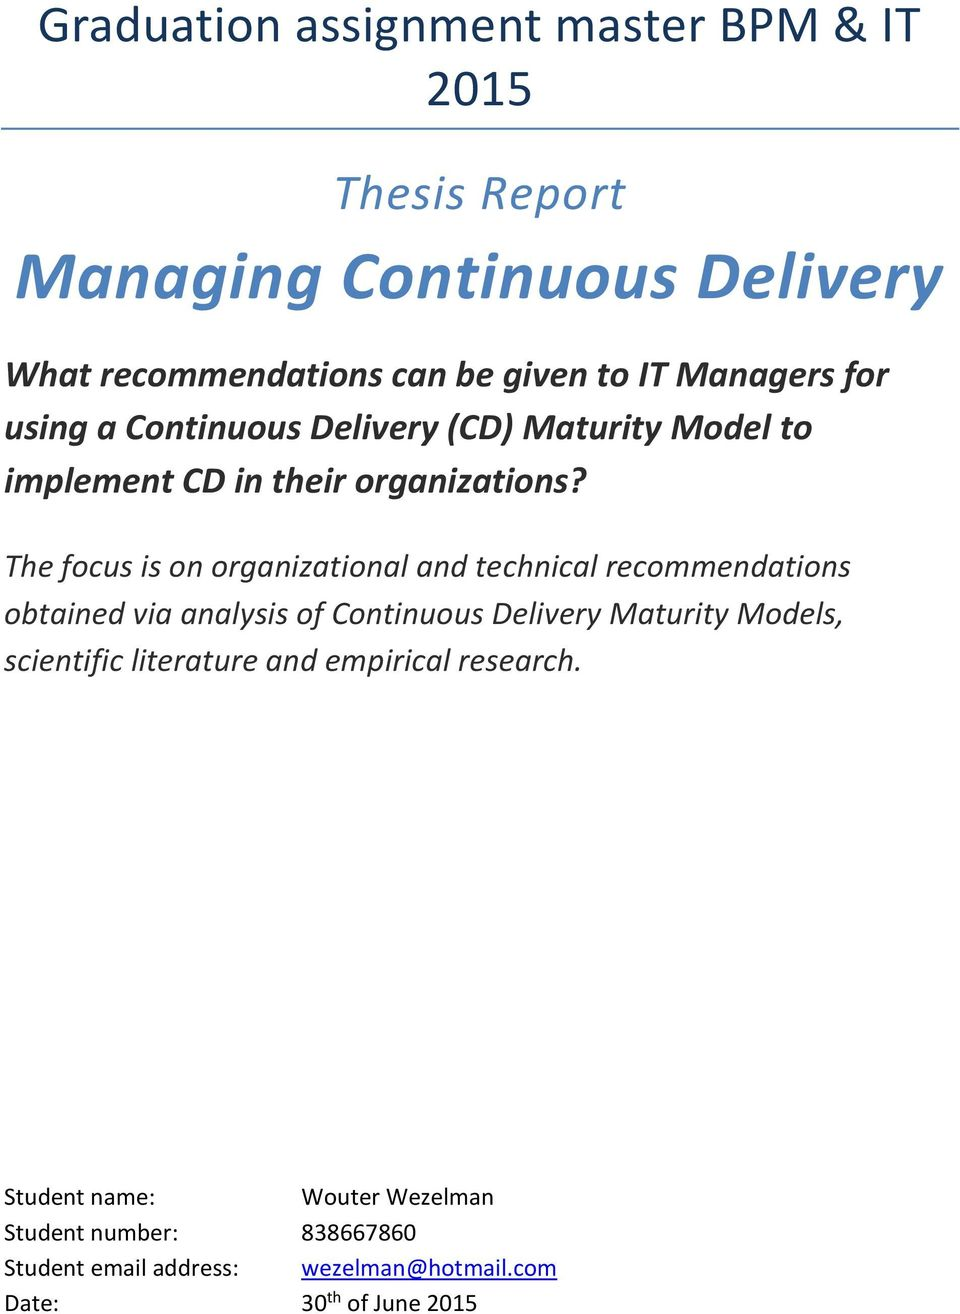 The focus is on organizational and technical recommendations obtained via analysis of Continuous Delivery Maturity Models,